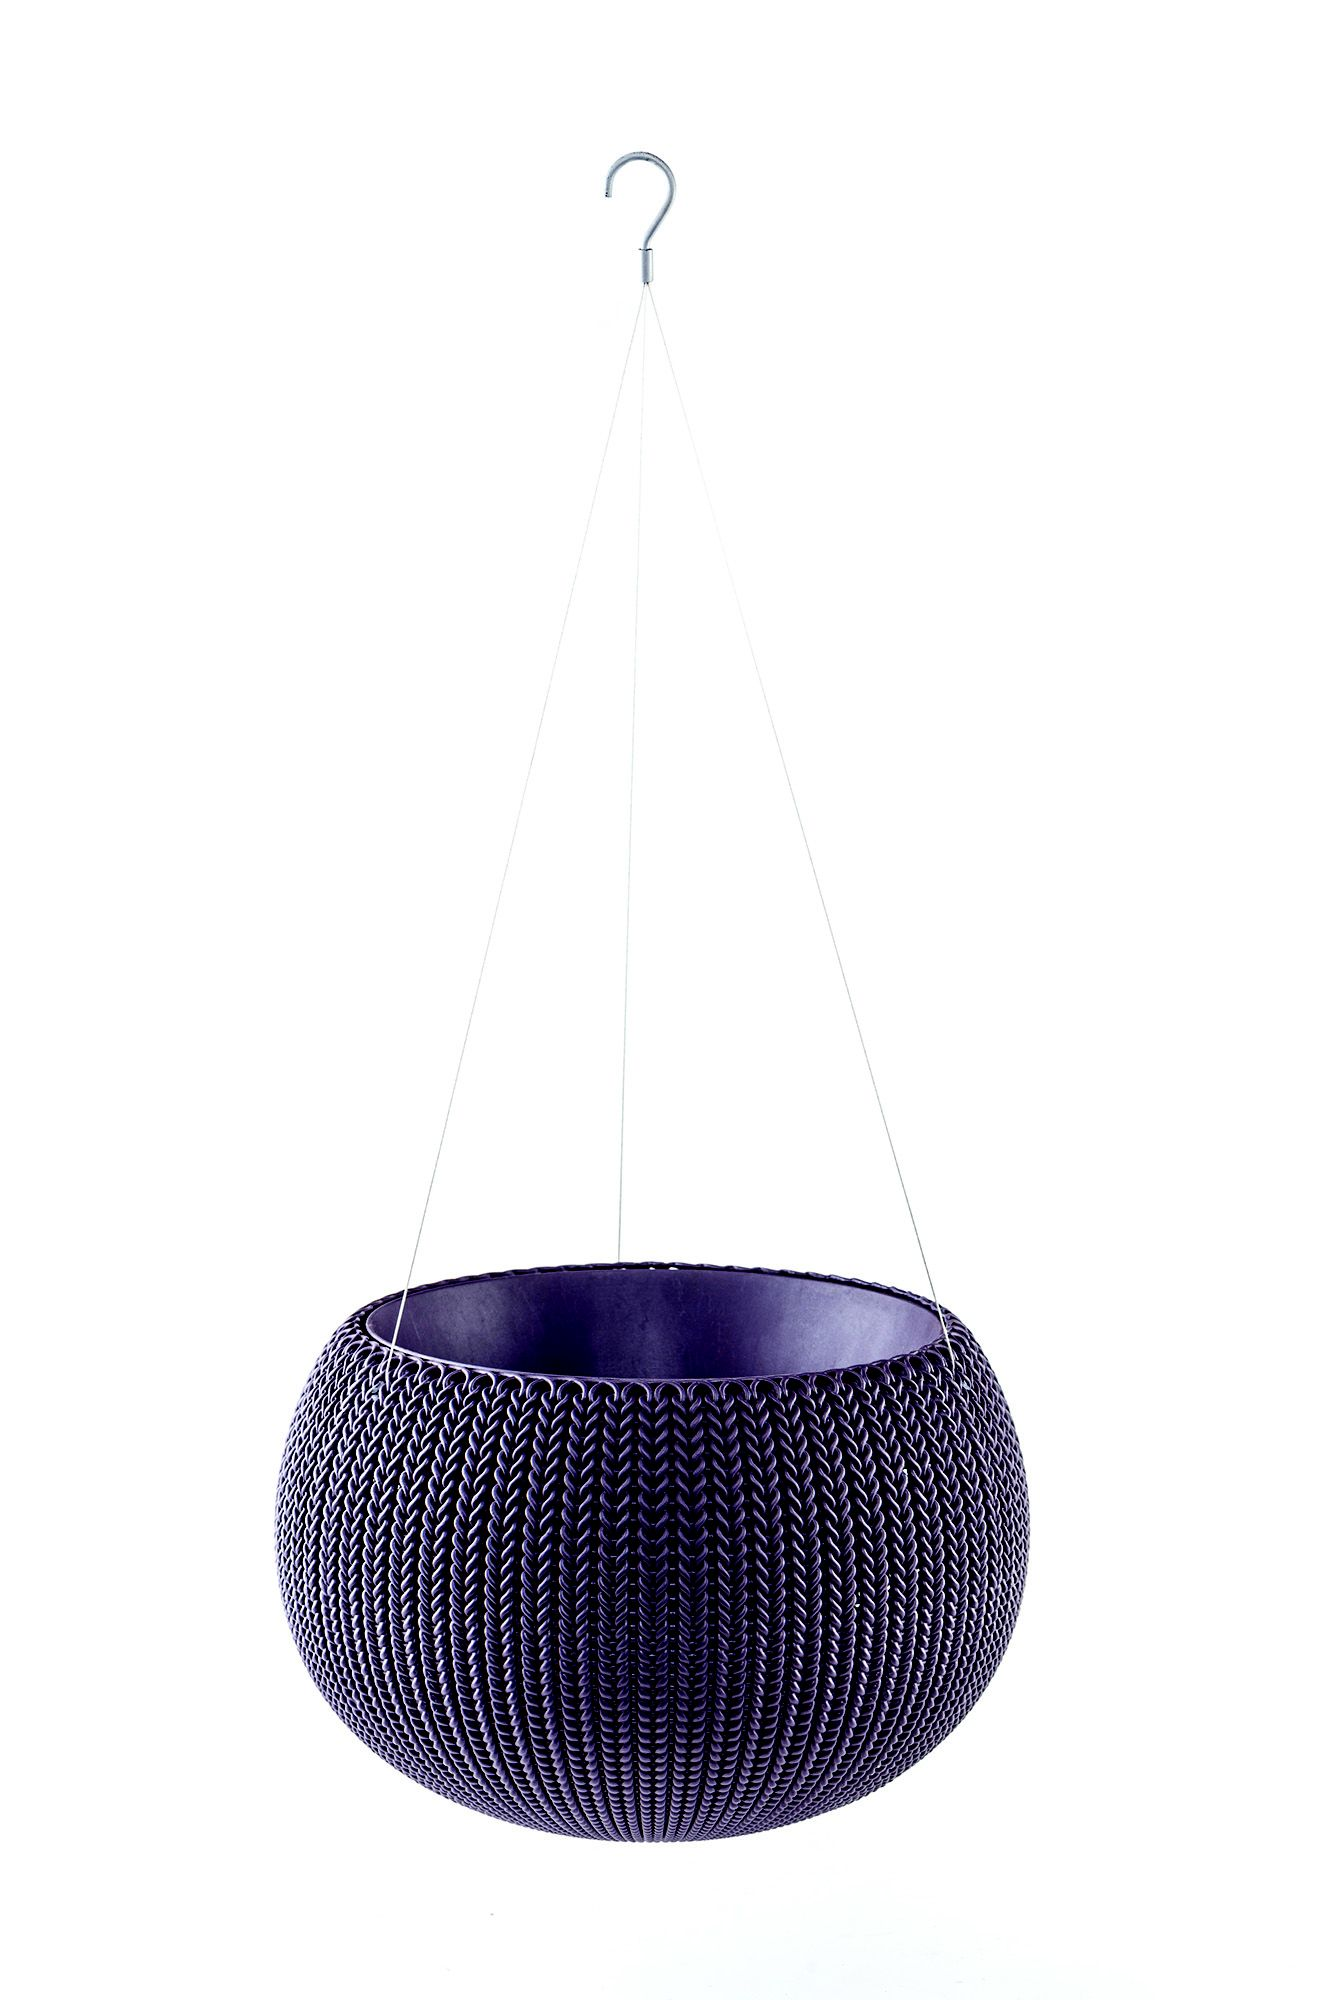 Keter Knitted Effect Purple Hanging Basket 355.6 mm | Departments | DIY at  B&Q